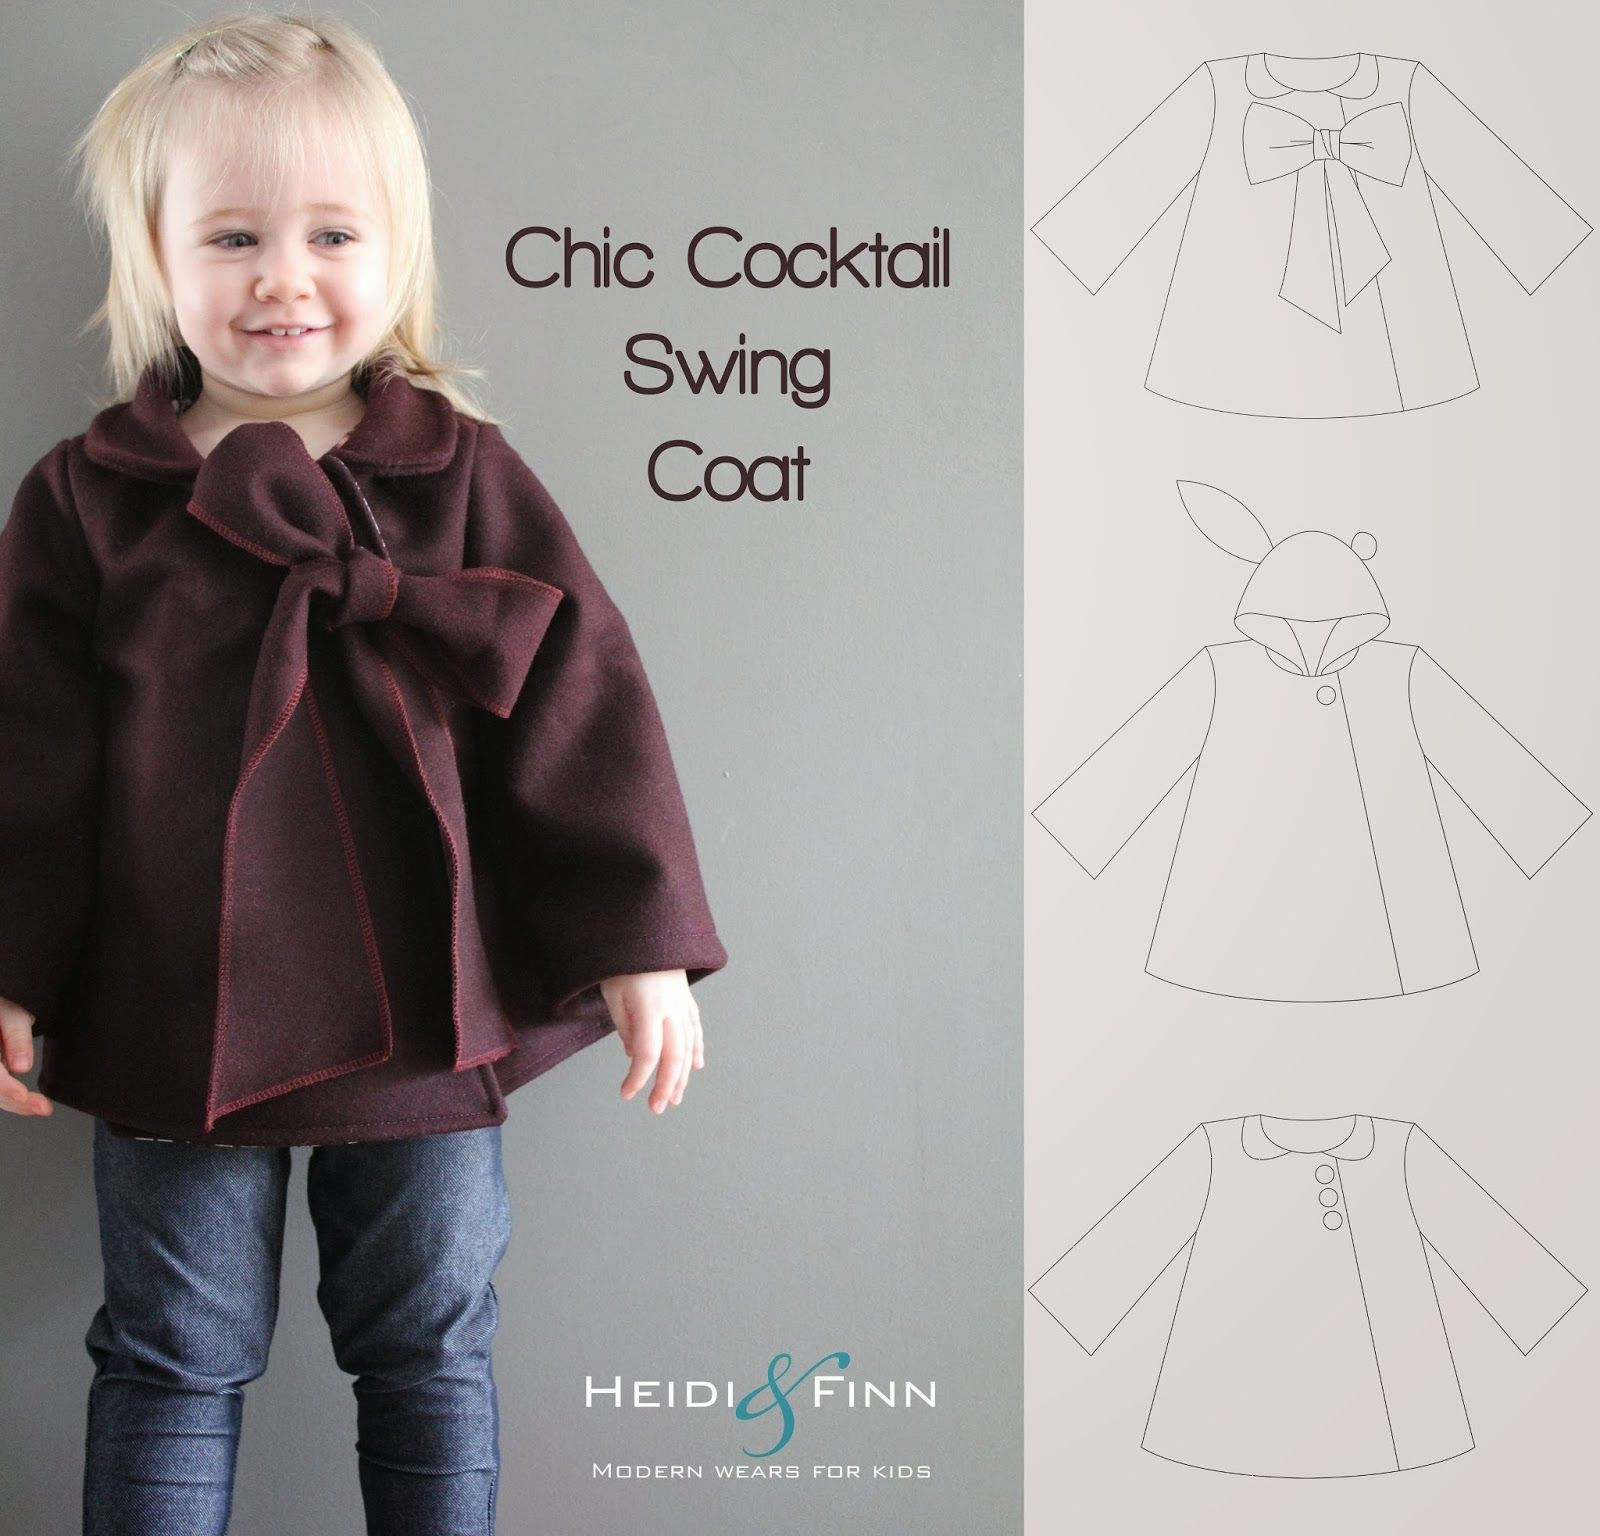 http://www.craftsy.com/pattern/sewing/clothing/sale-chic-cocktail ...